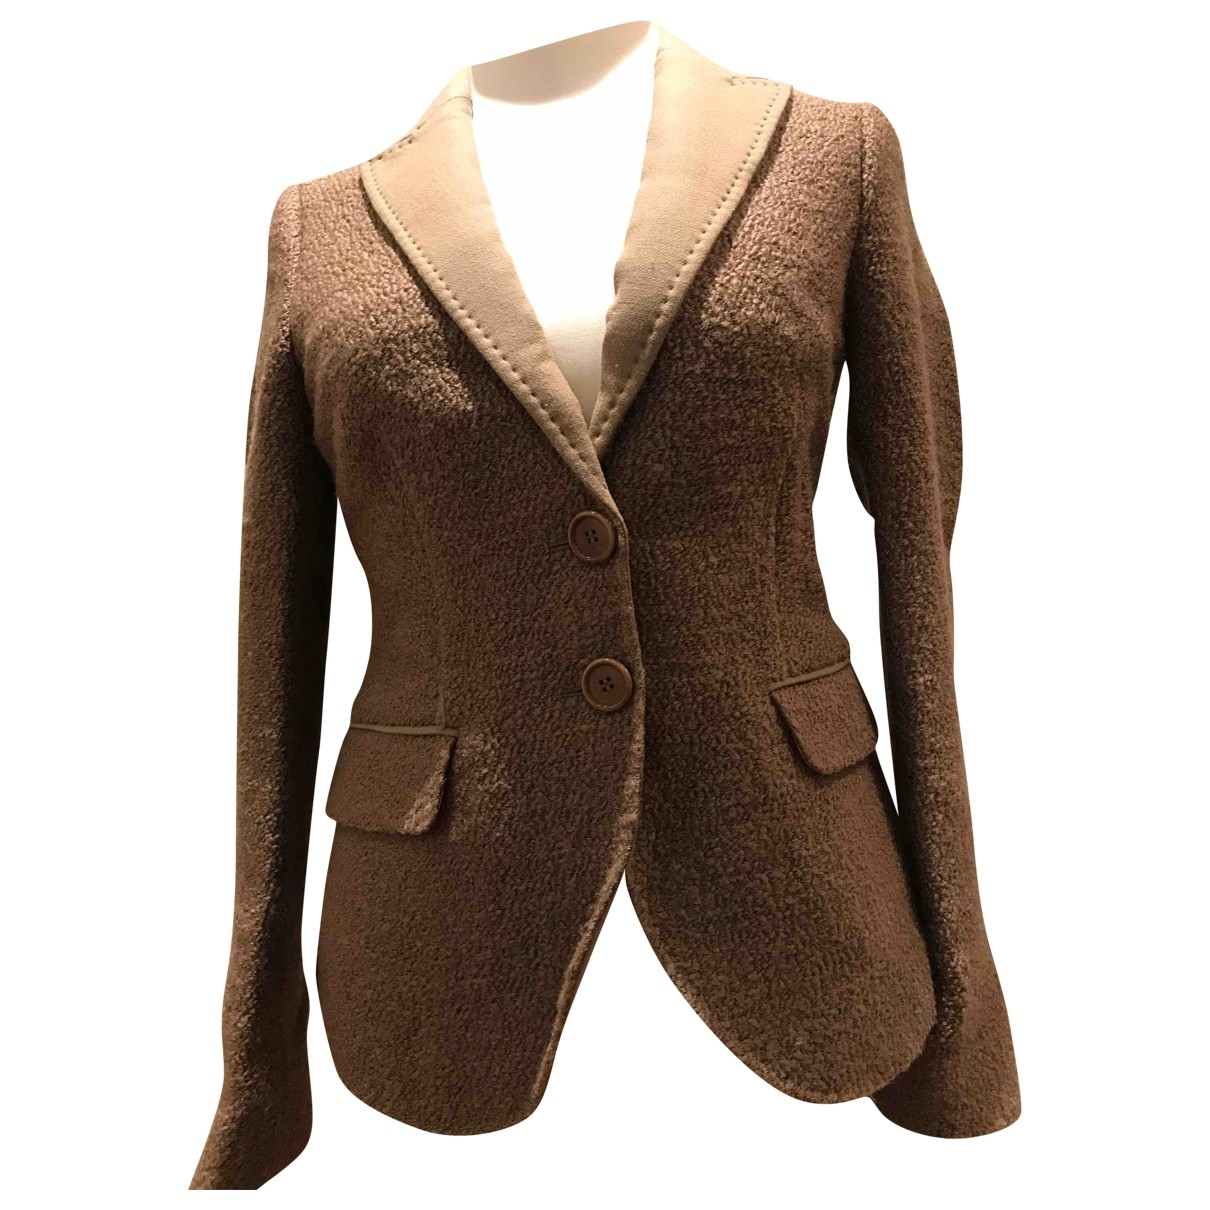 Etro \N Camel Wool jacket for Women 42 IT